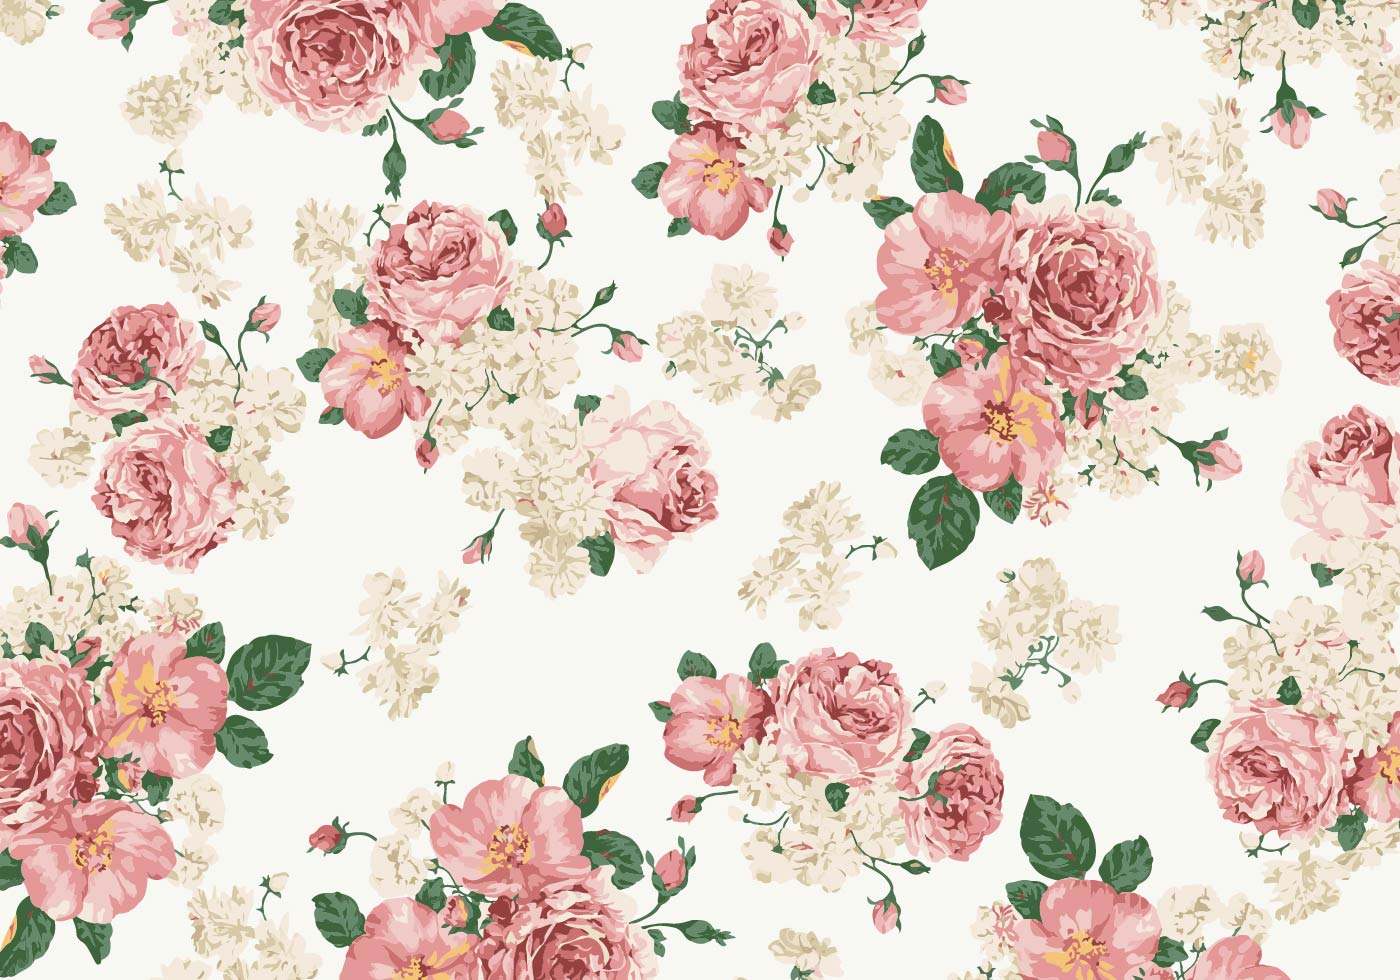 Vintage Pink And White Roses Vector Background - Download ...